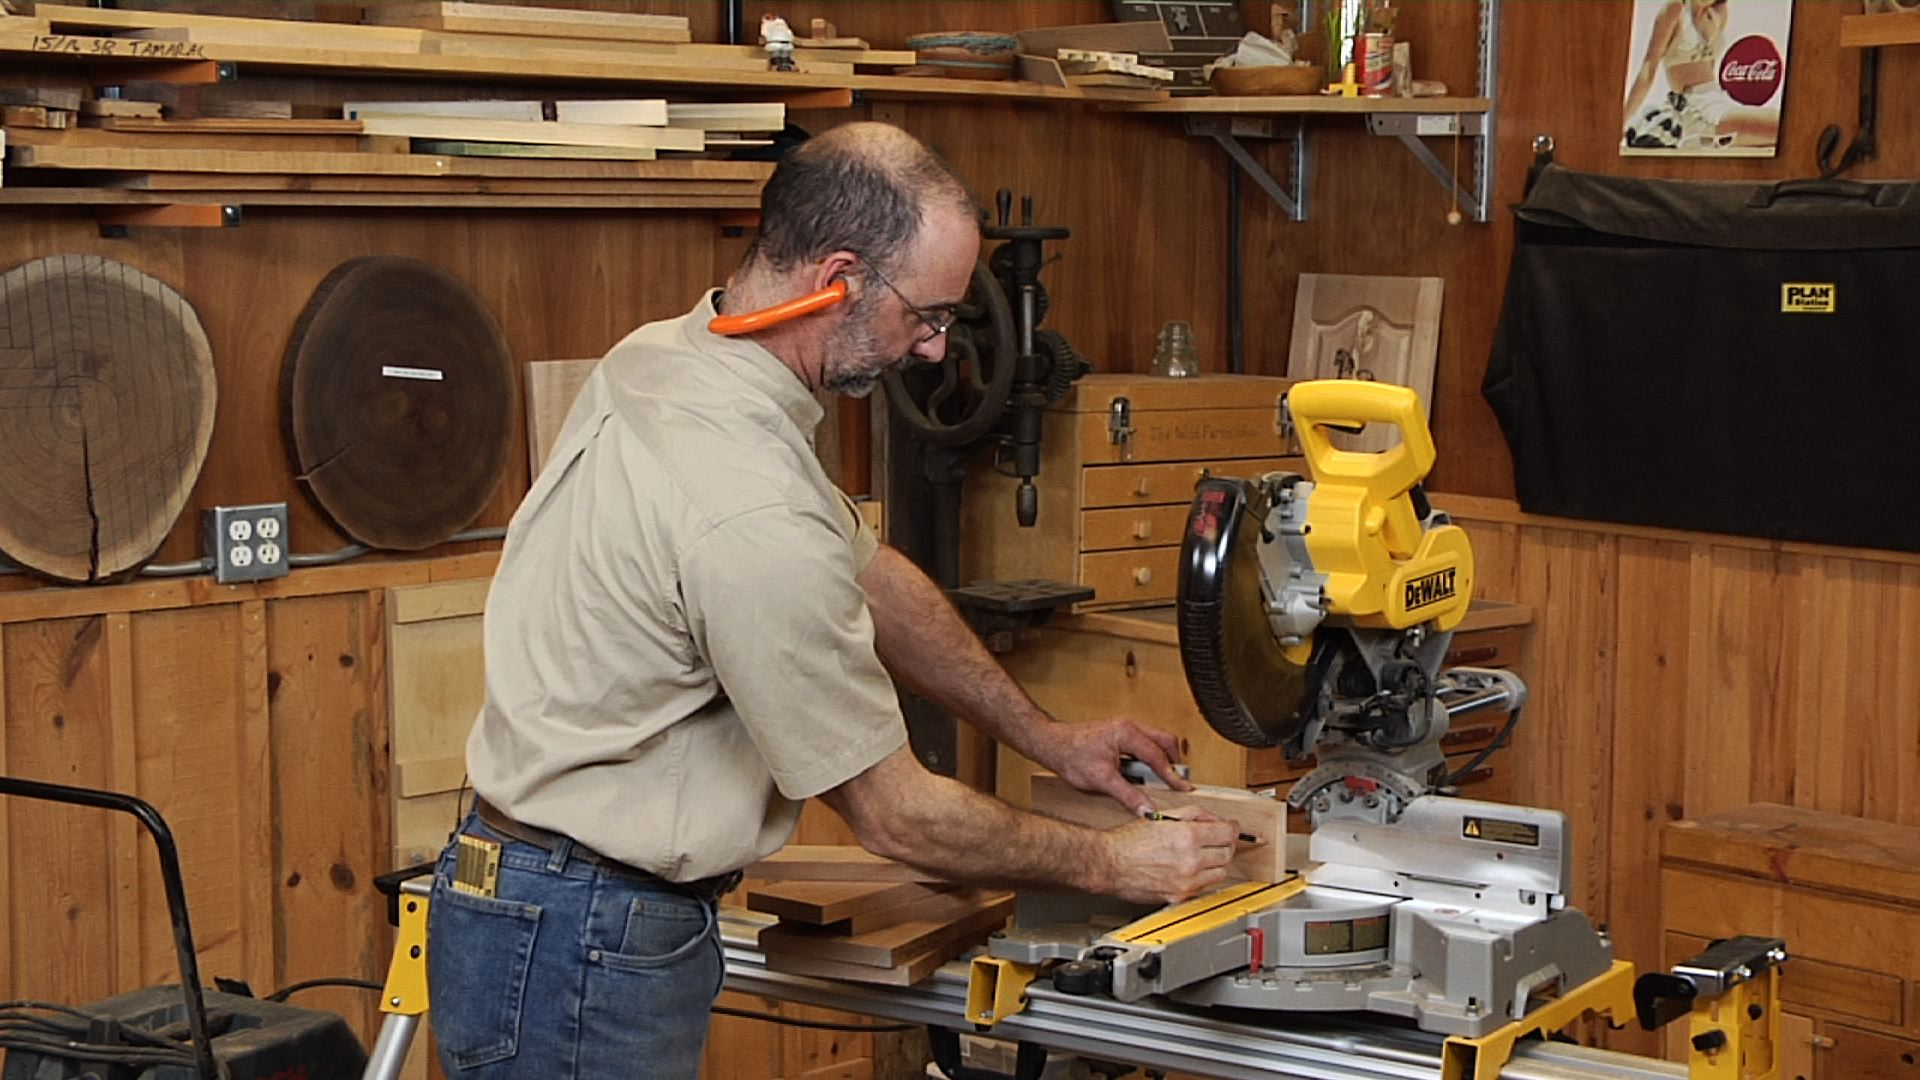 Learn how to use a miter saw and set it up